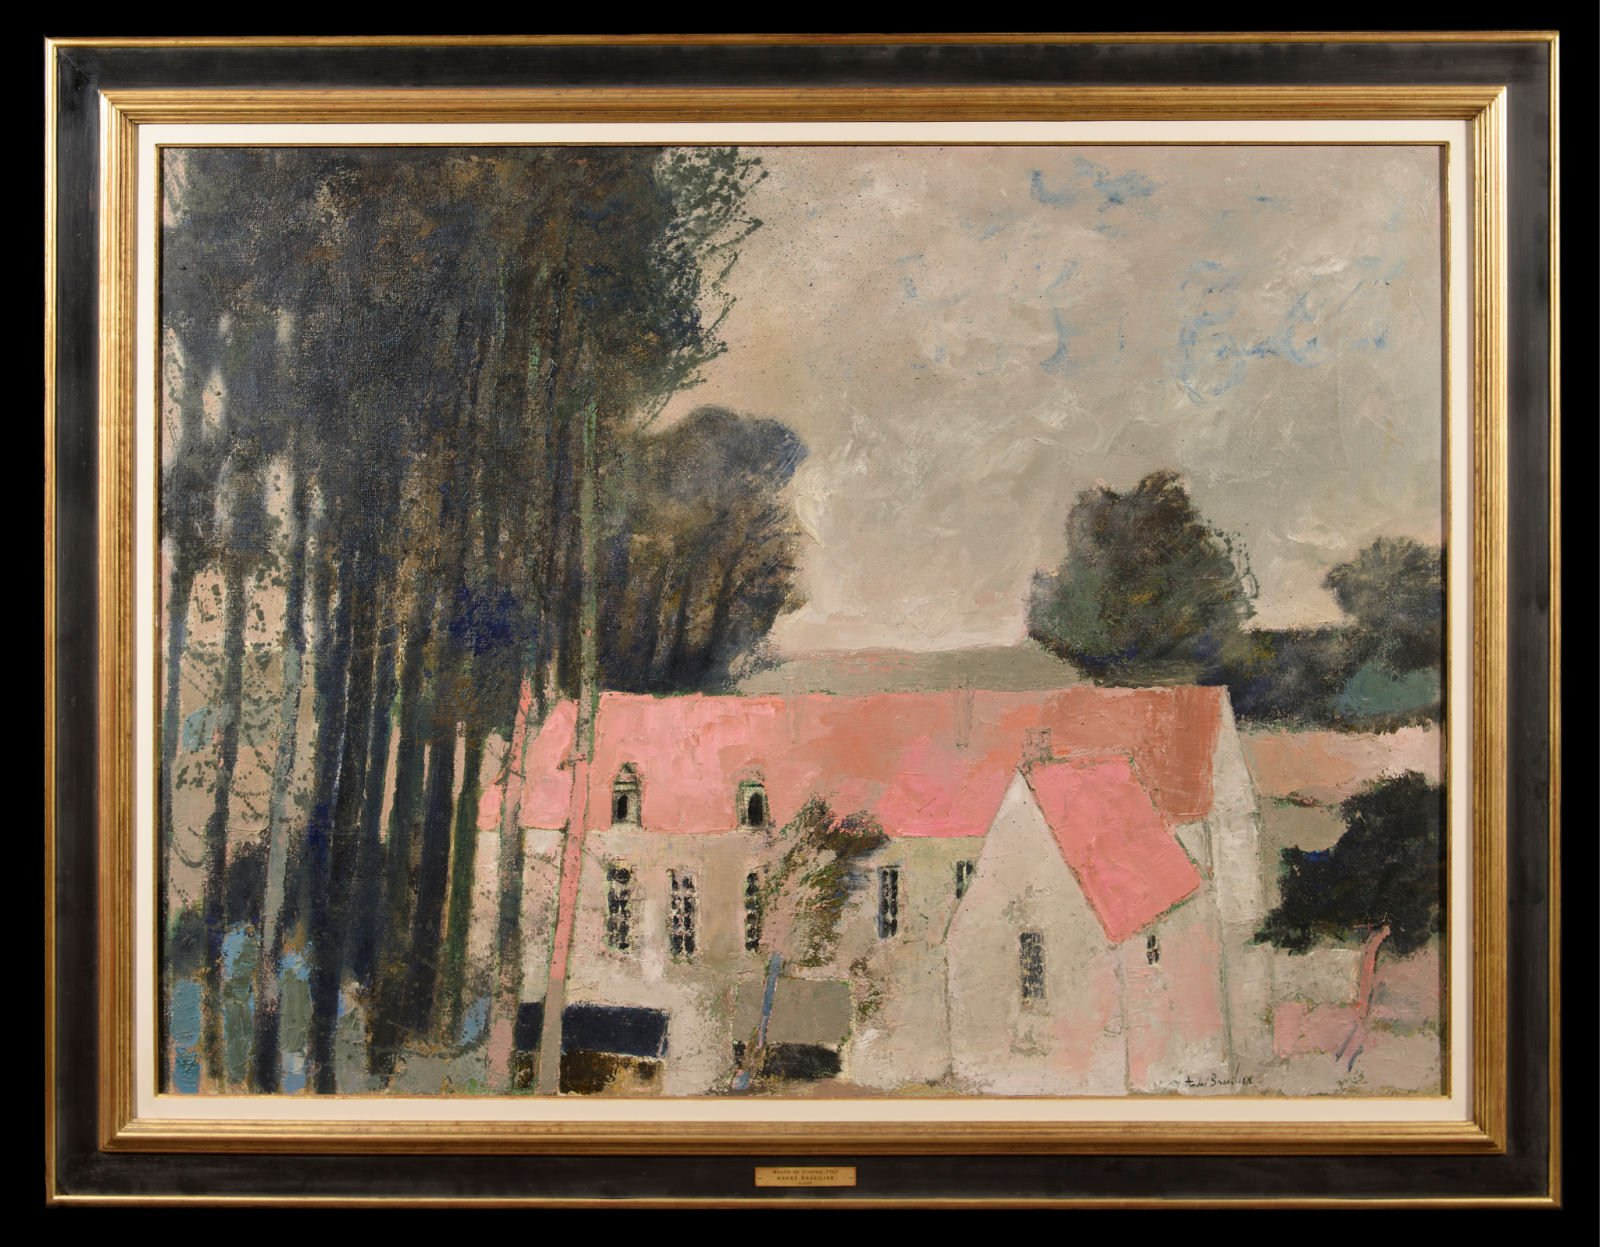 Art Gallery Cotswolds Trinity House Paintings - Brasilier